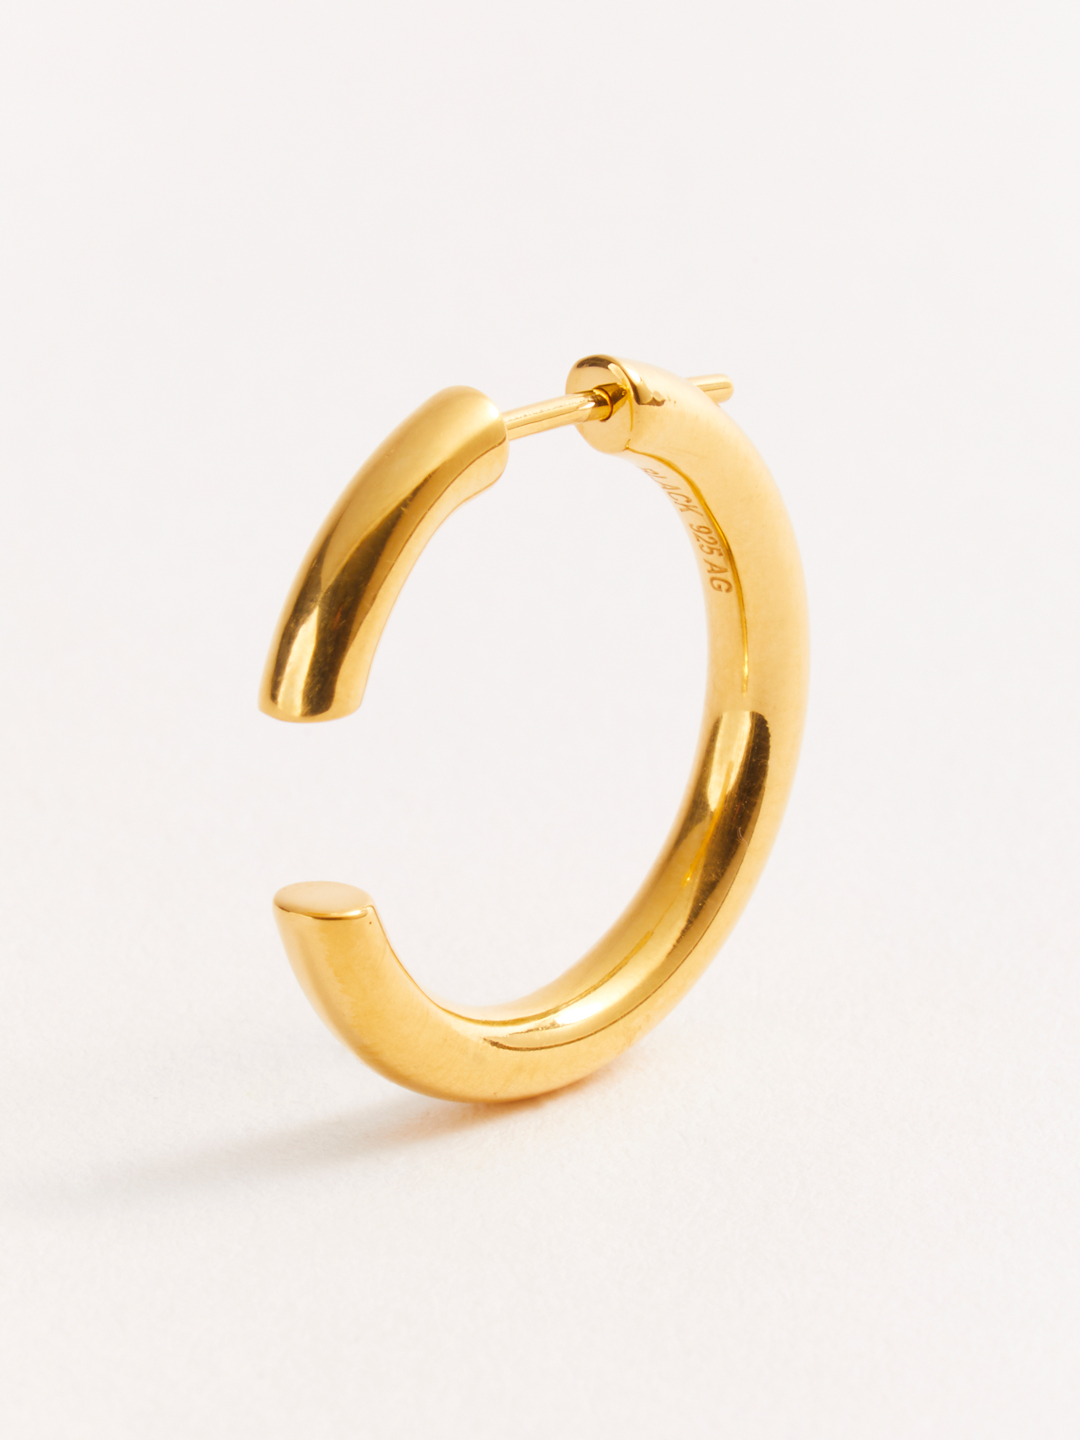 Disrupted 22 Pierced Earring - Gold High Polish